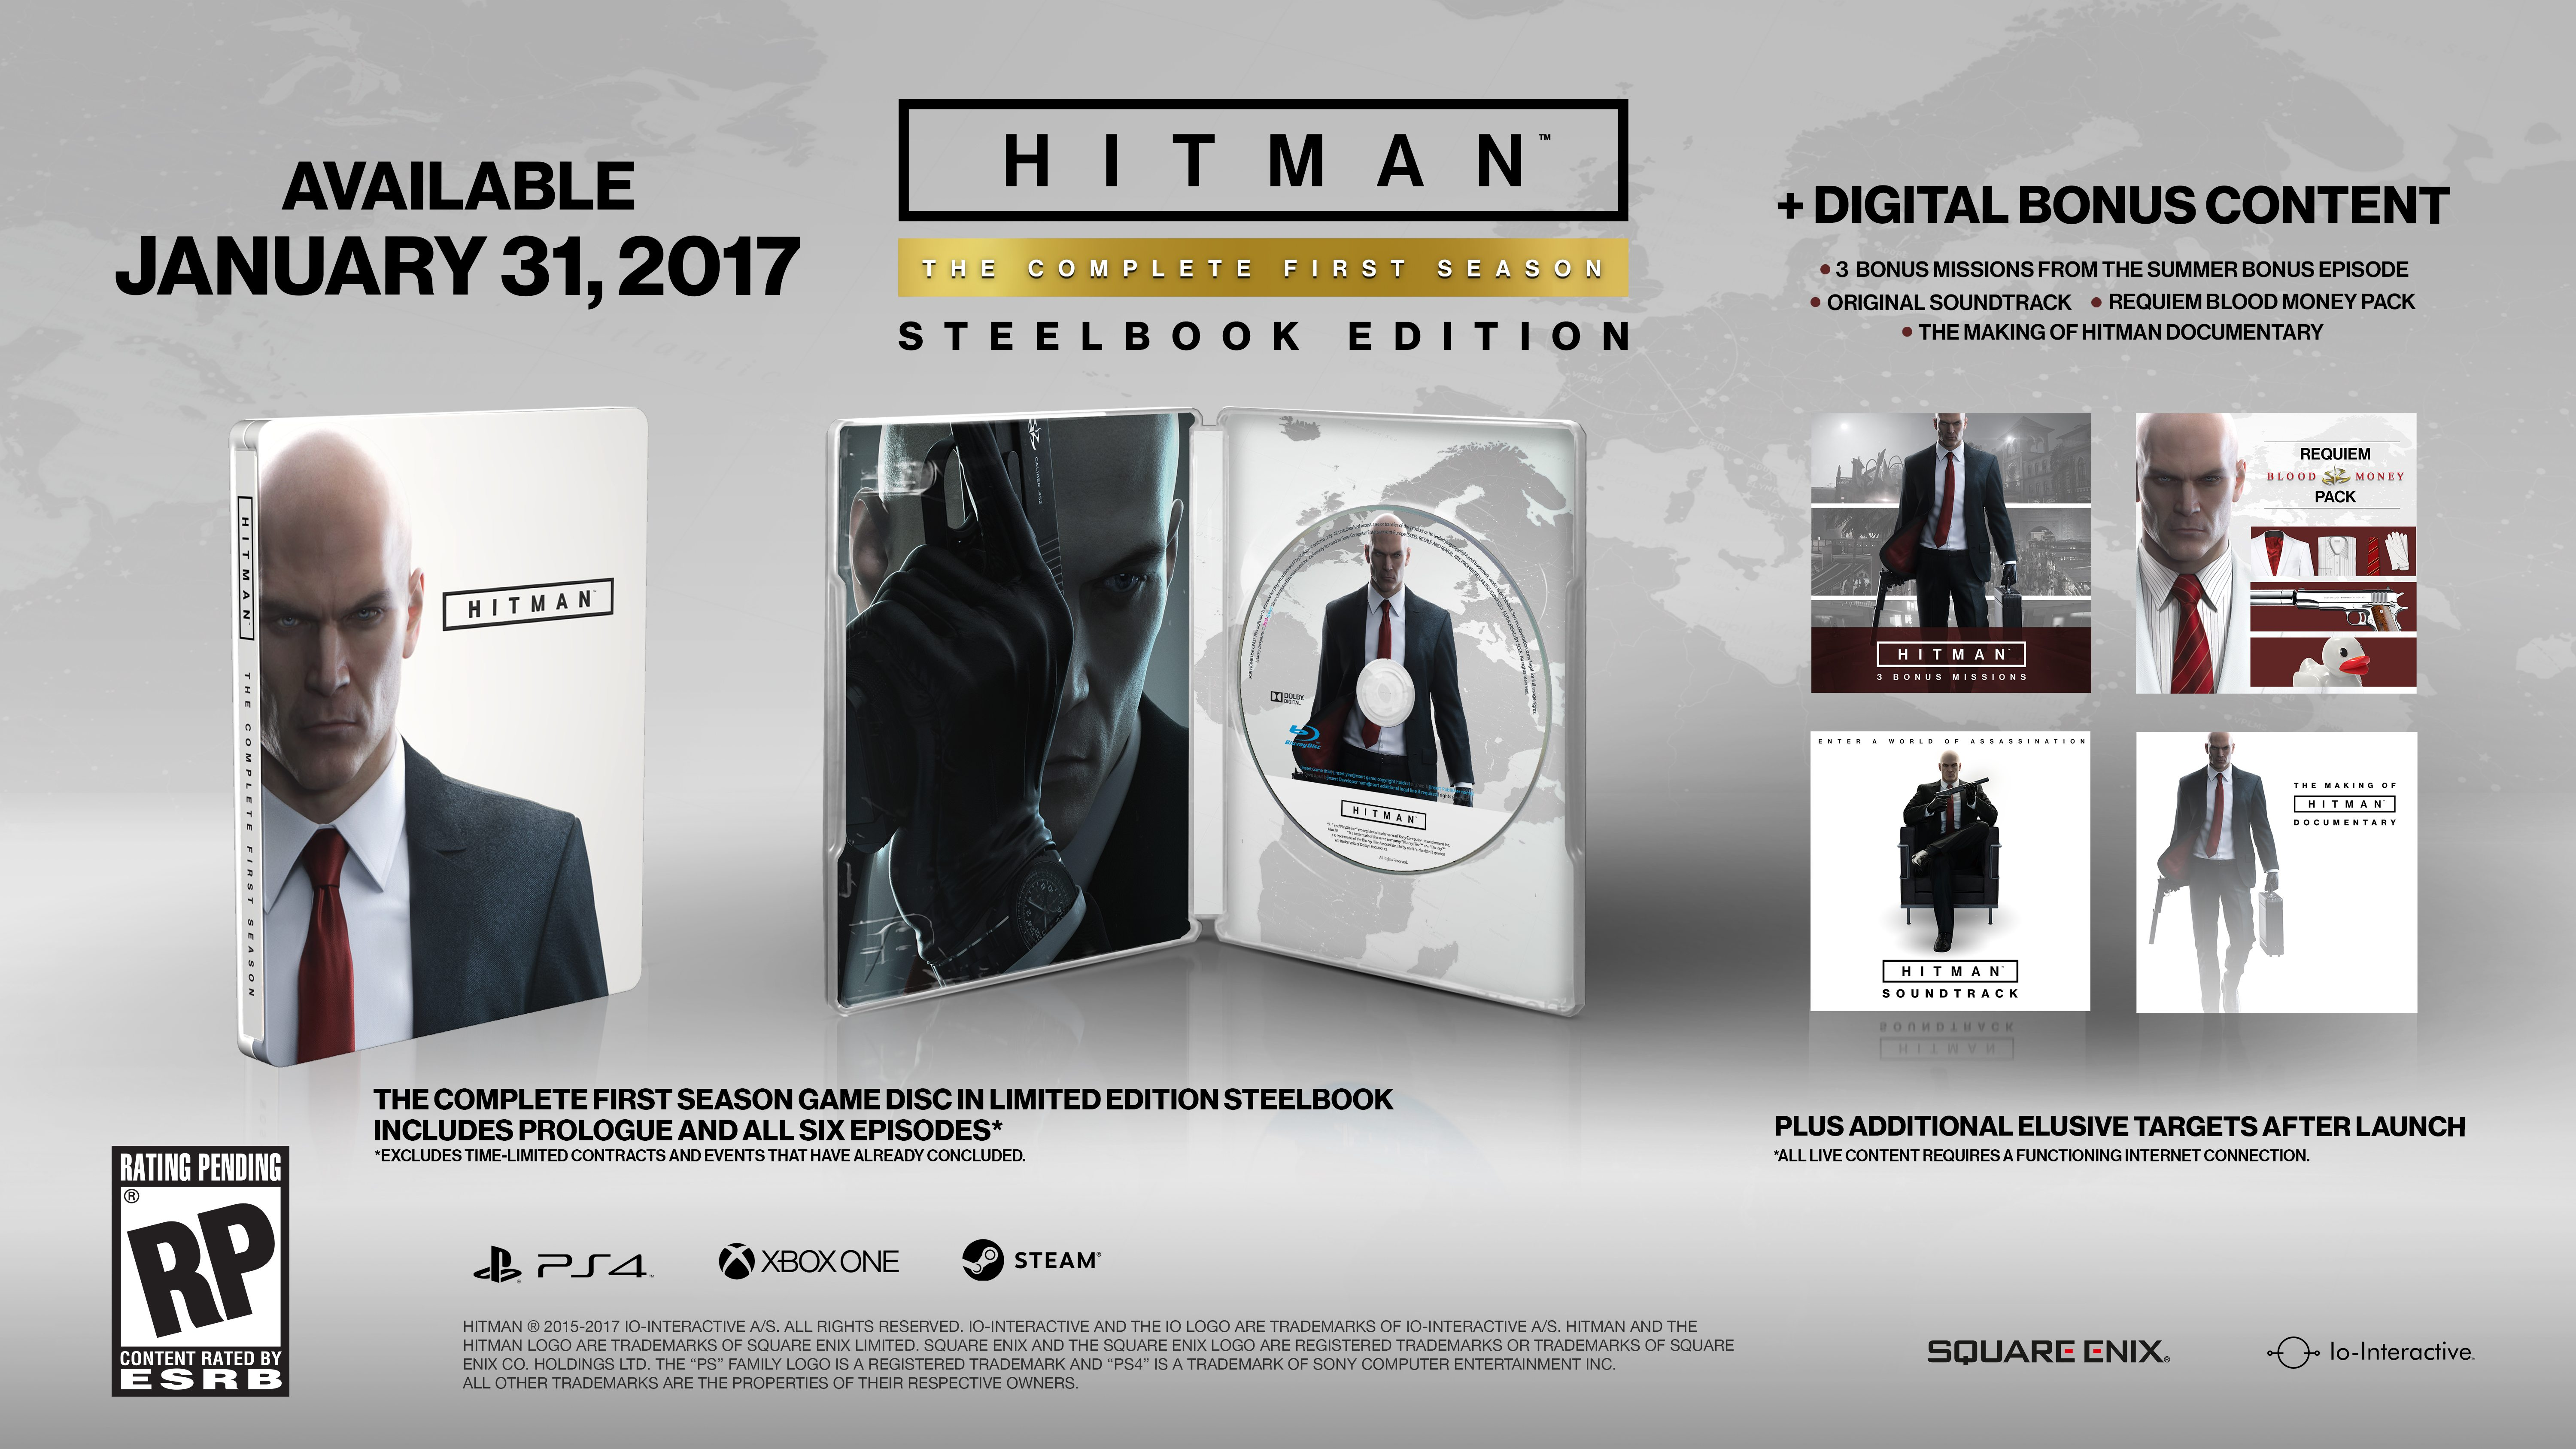 HITMAN: The Complete First Season Full Details and Disc Release Date Confirmed